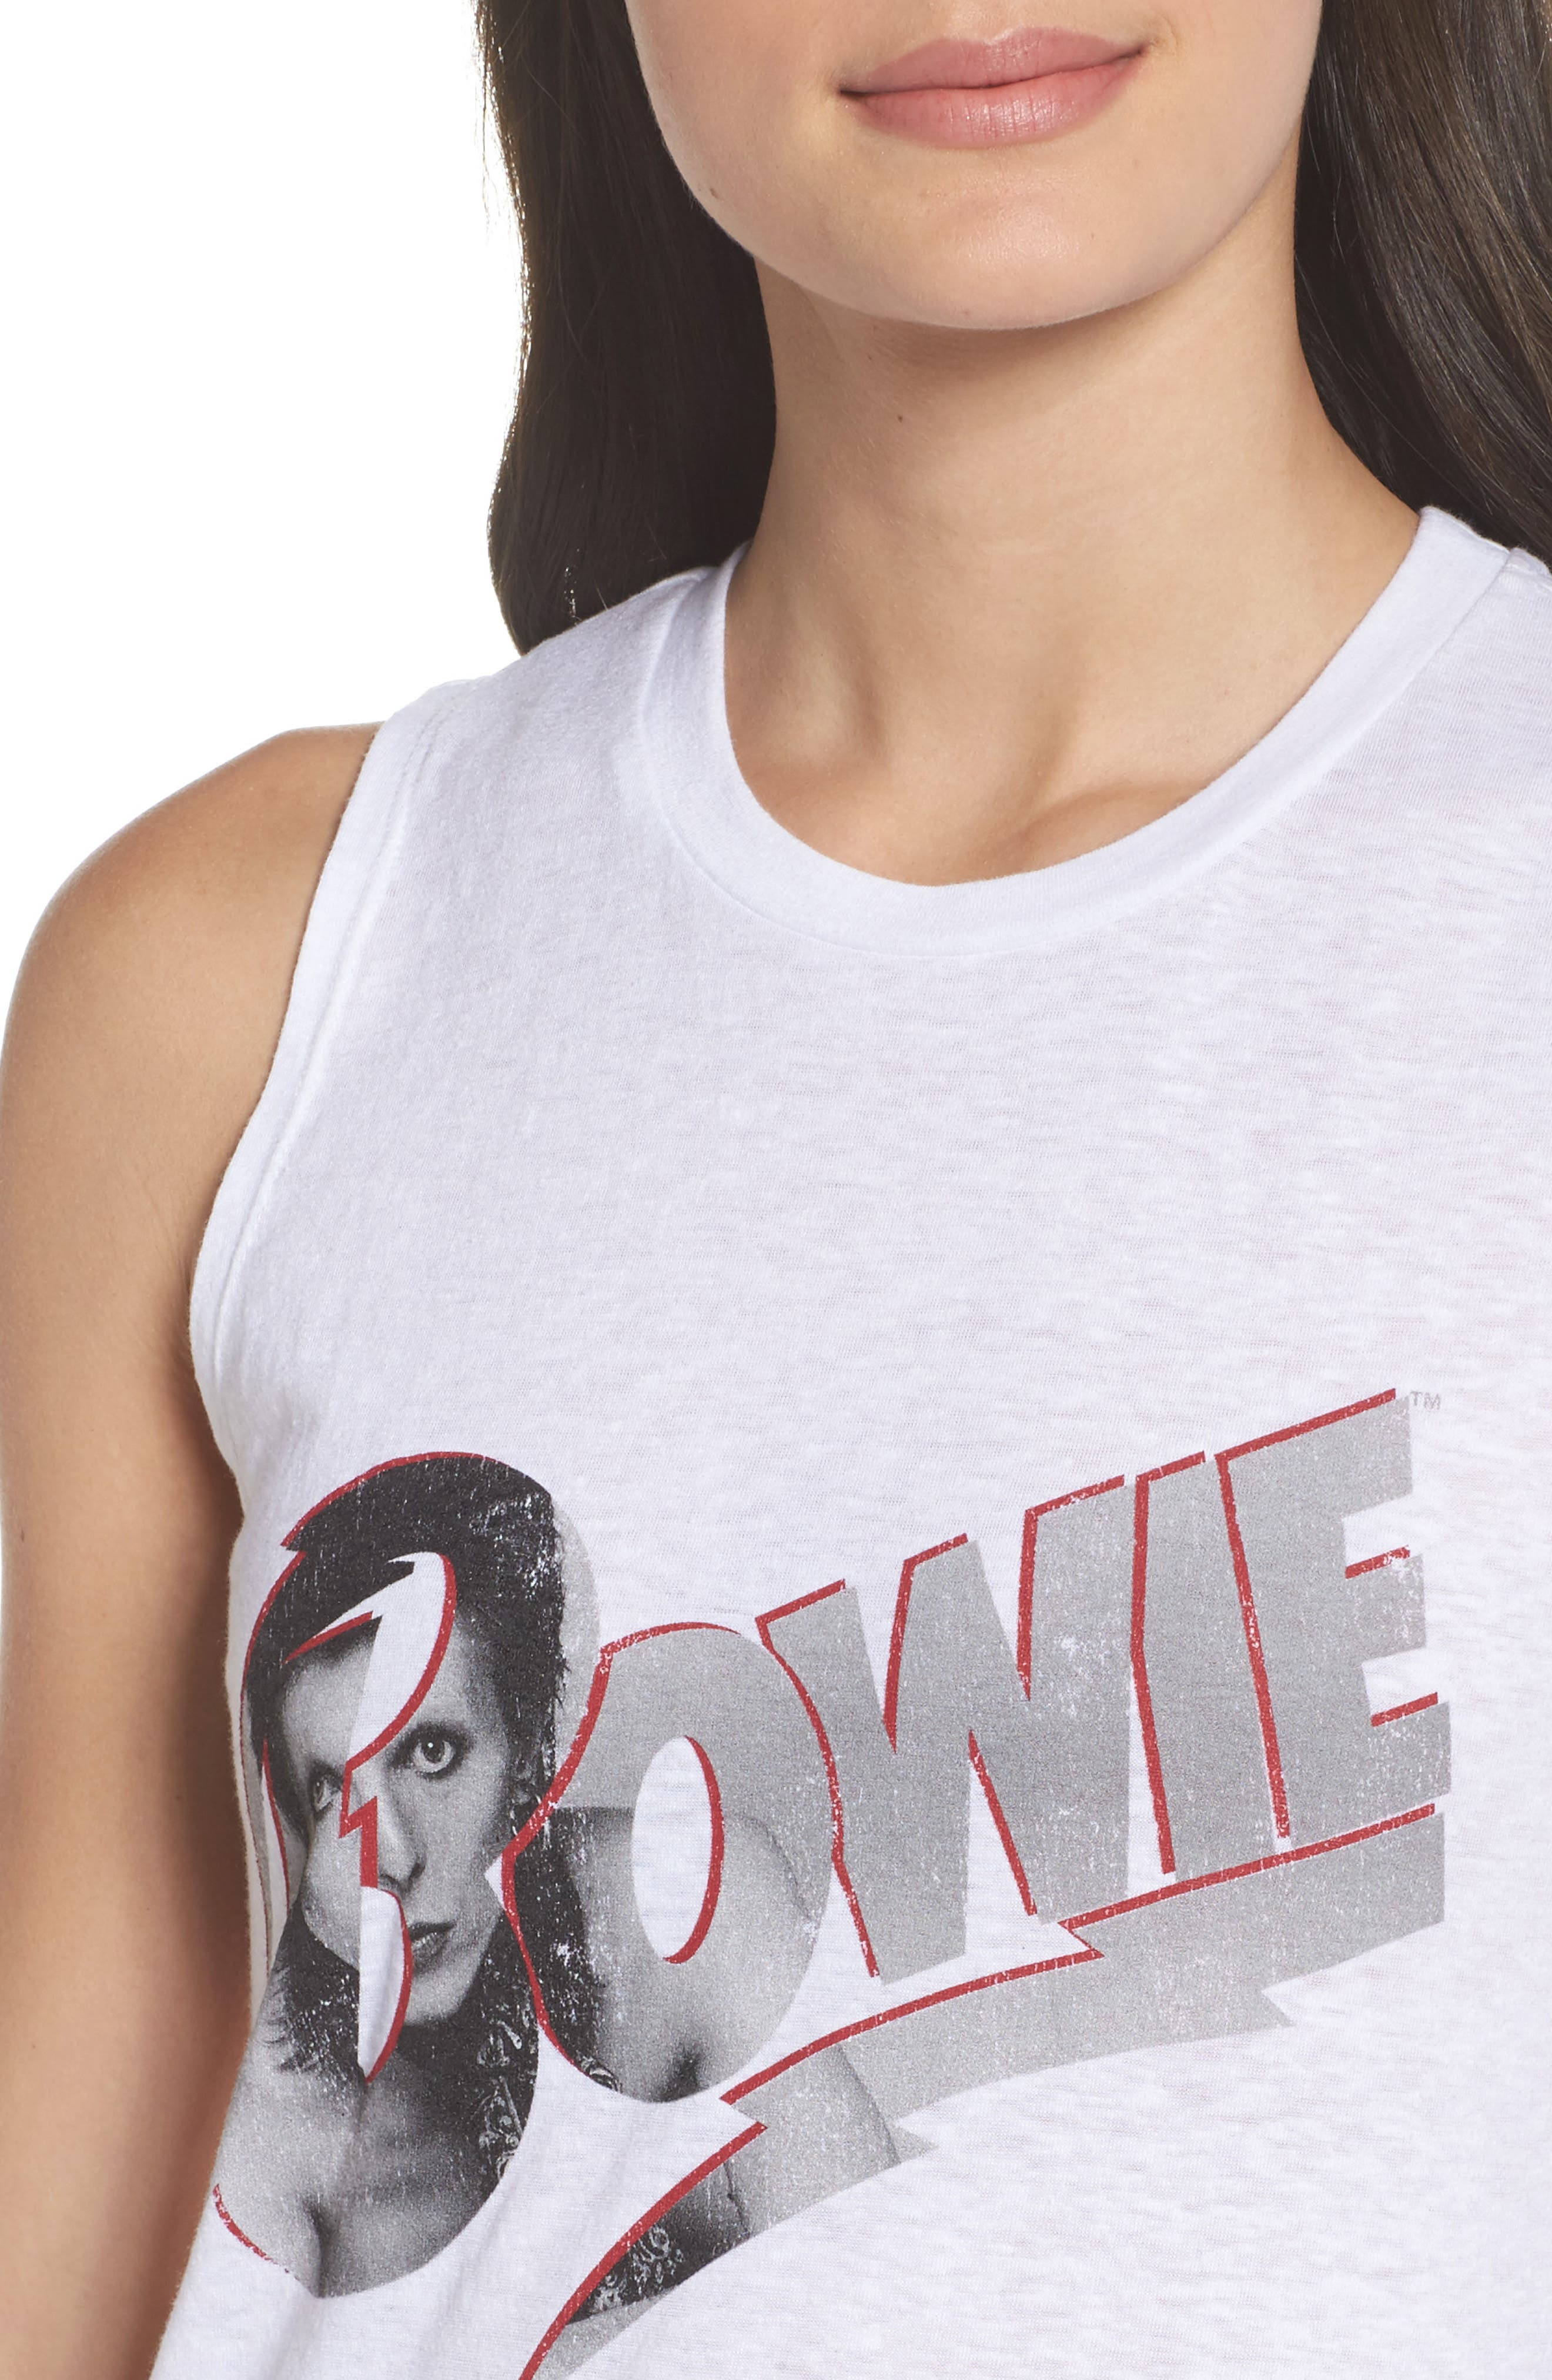 David Bowie High/Low Muscle Tank,                             Alternate thumbnail 5, color,                             White